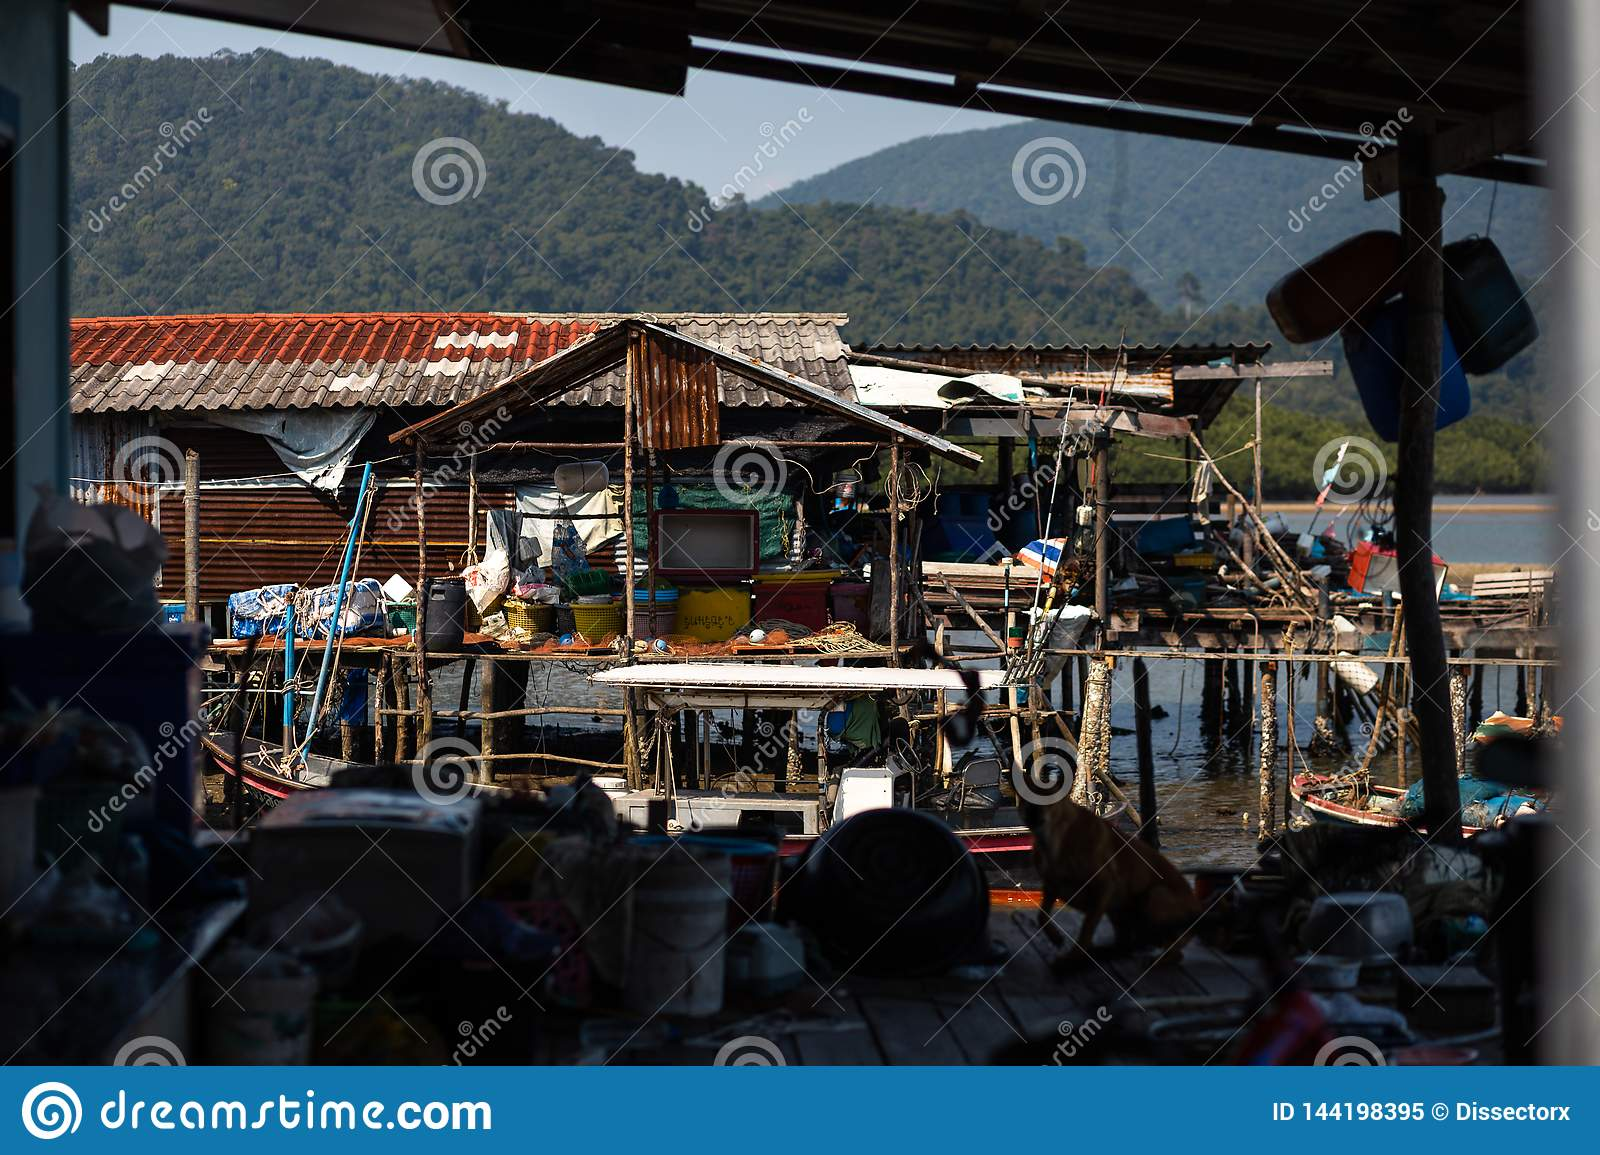 KO CHANG, THAILAND - APRIL 10, 2018: Authentic traditional fishermen`s village on the island - People and children in